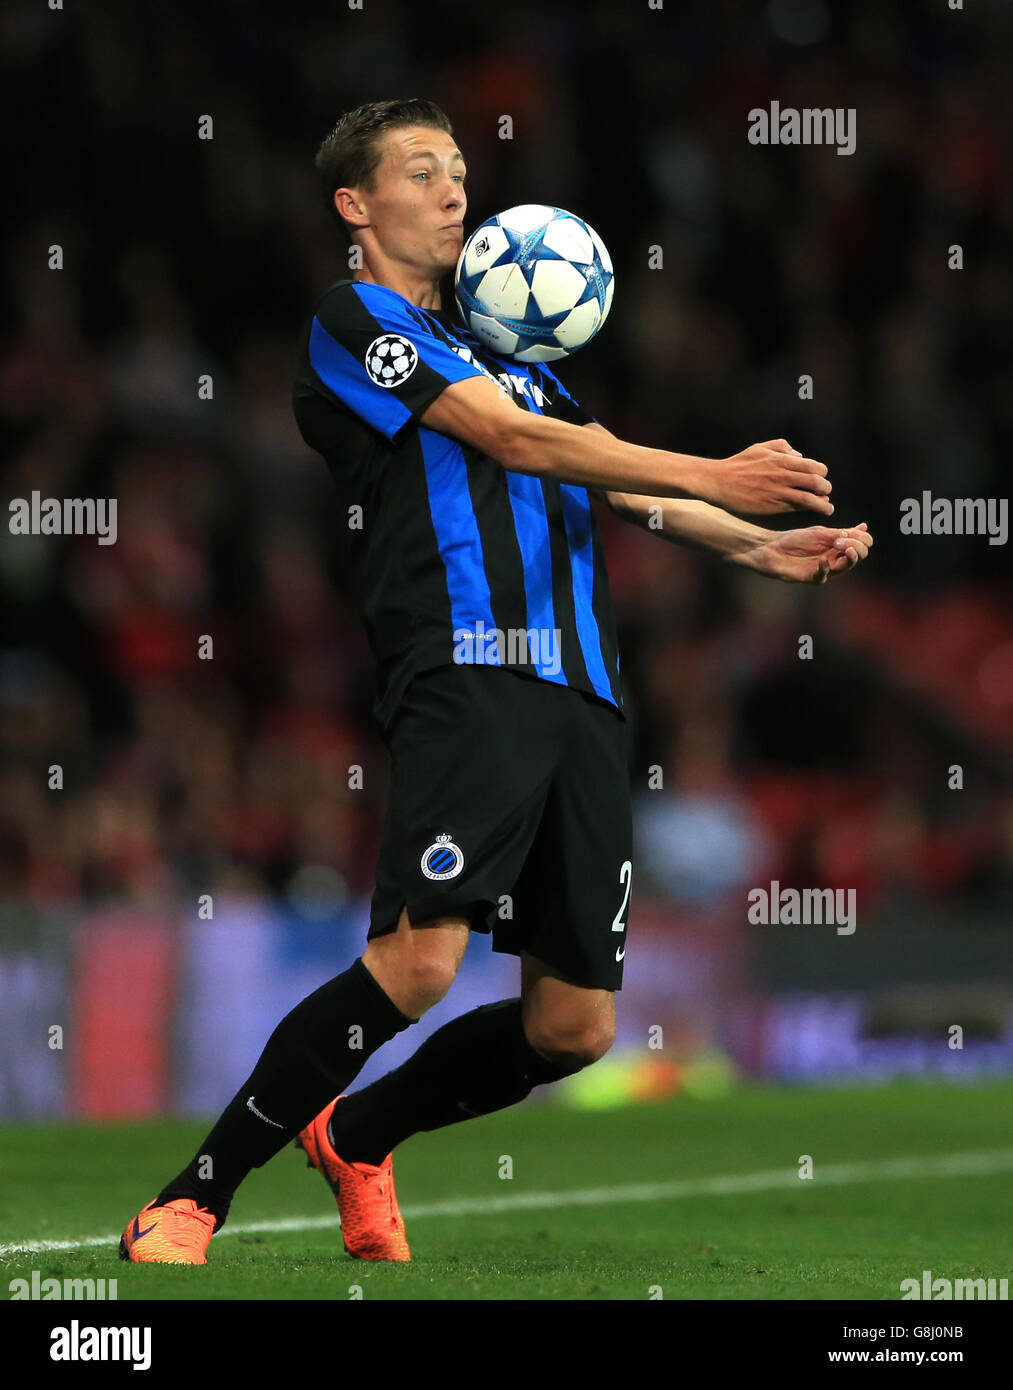 Soccer - UEFA Champions League - Qualifying - Play-off - Manchester United v Club Brugge - Old Trafford - Stock Image